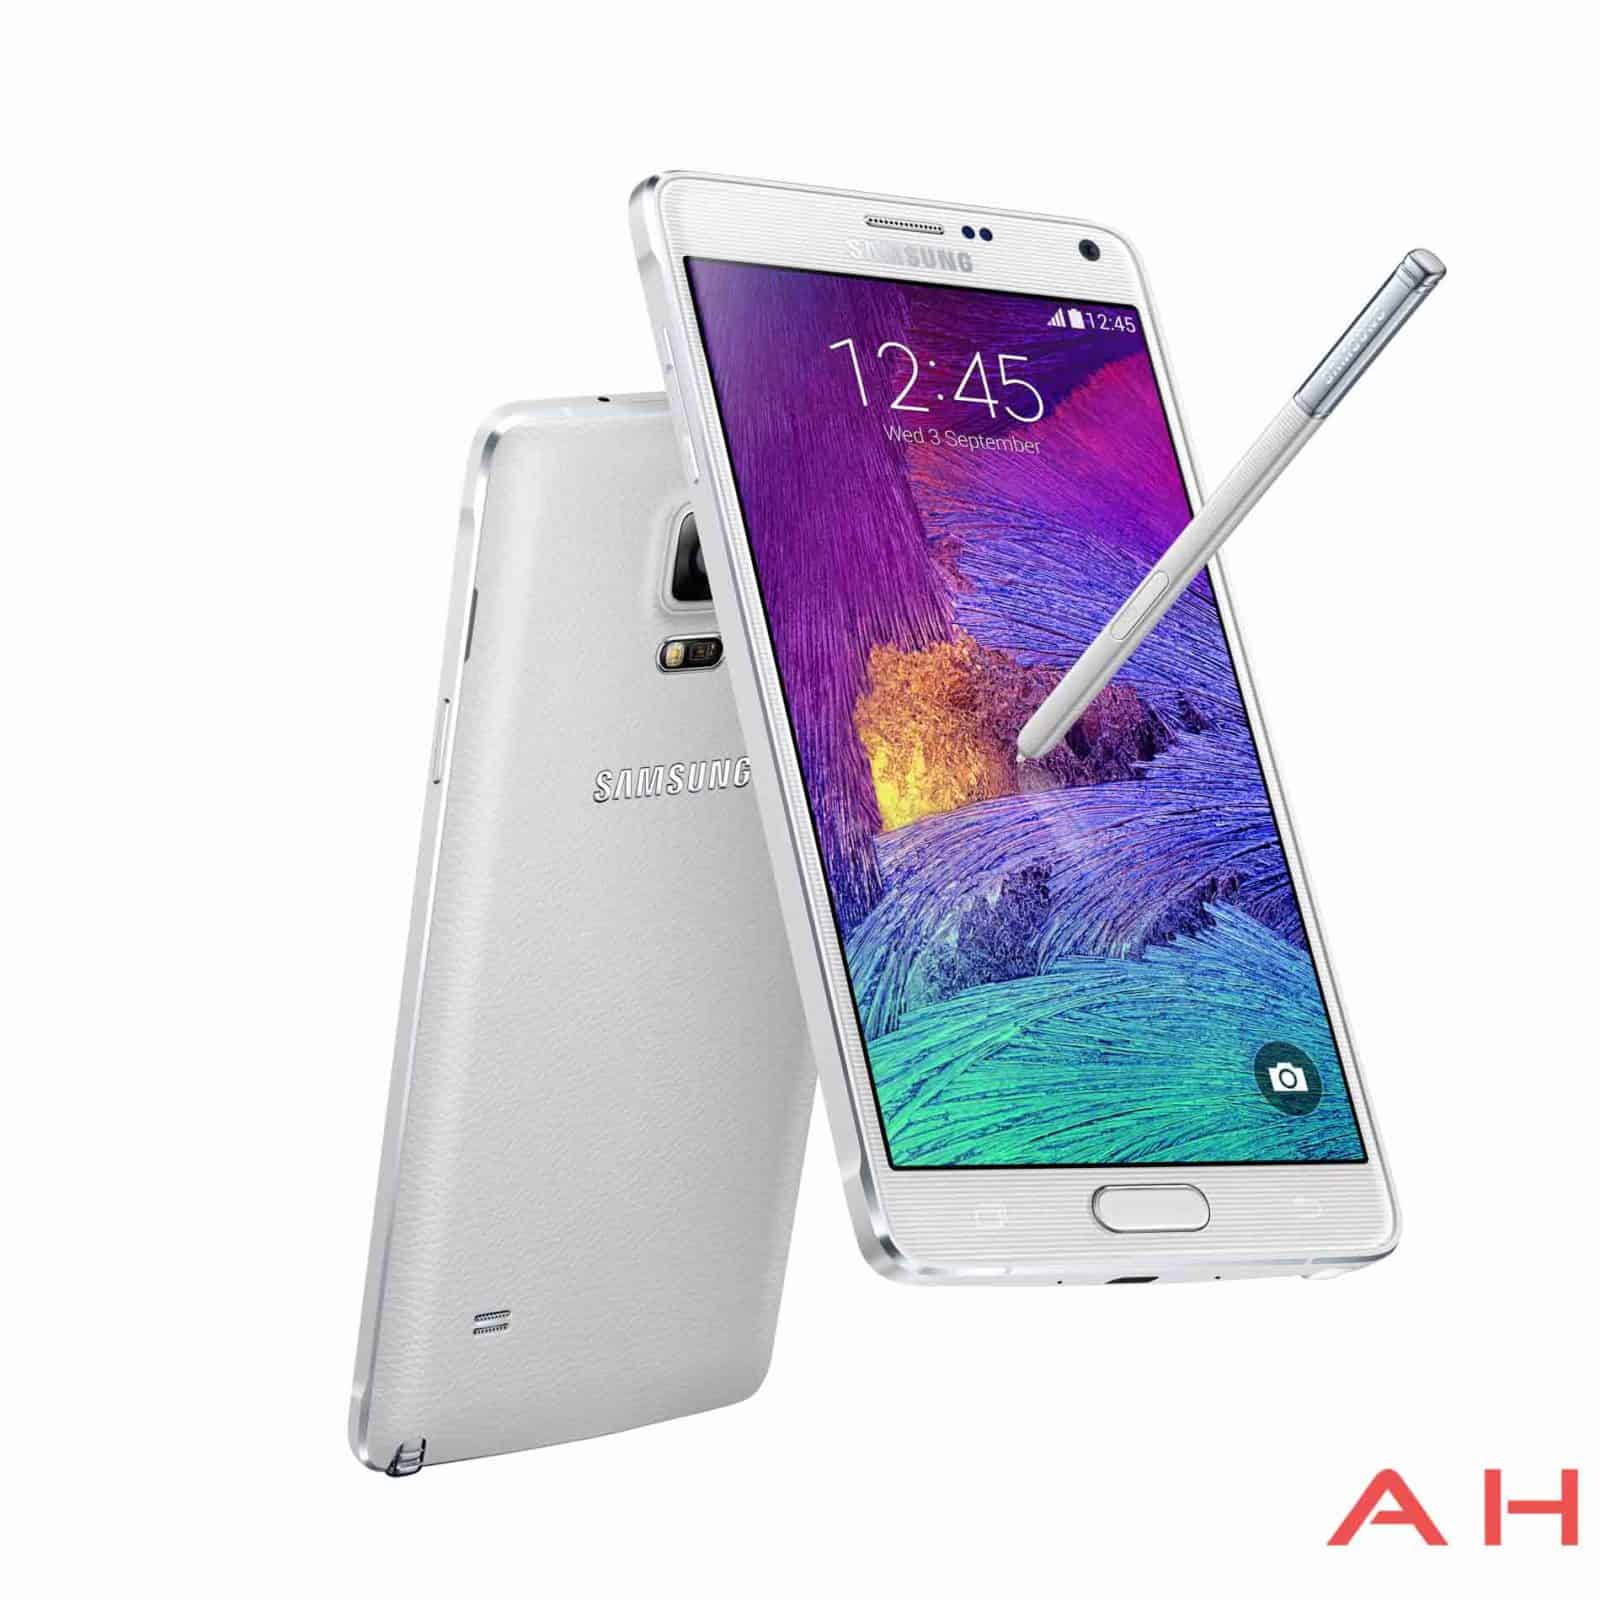 Samsung-Galaxy-Note-4-AH-11